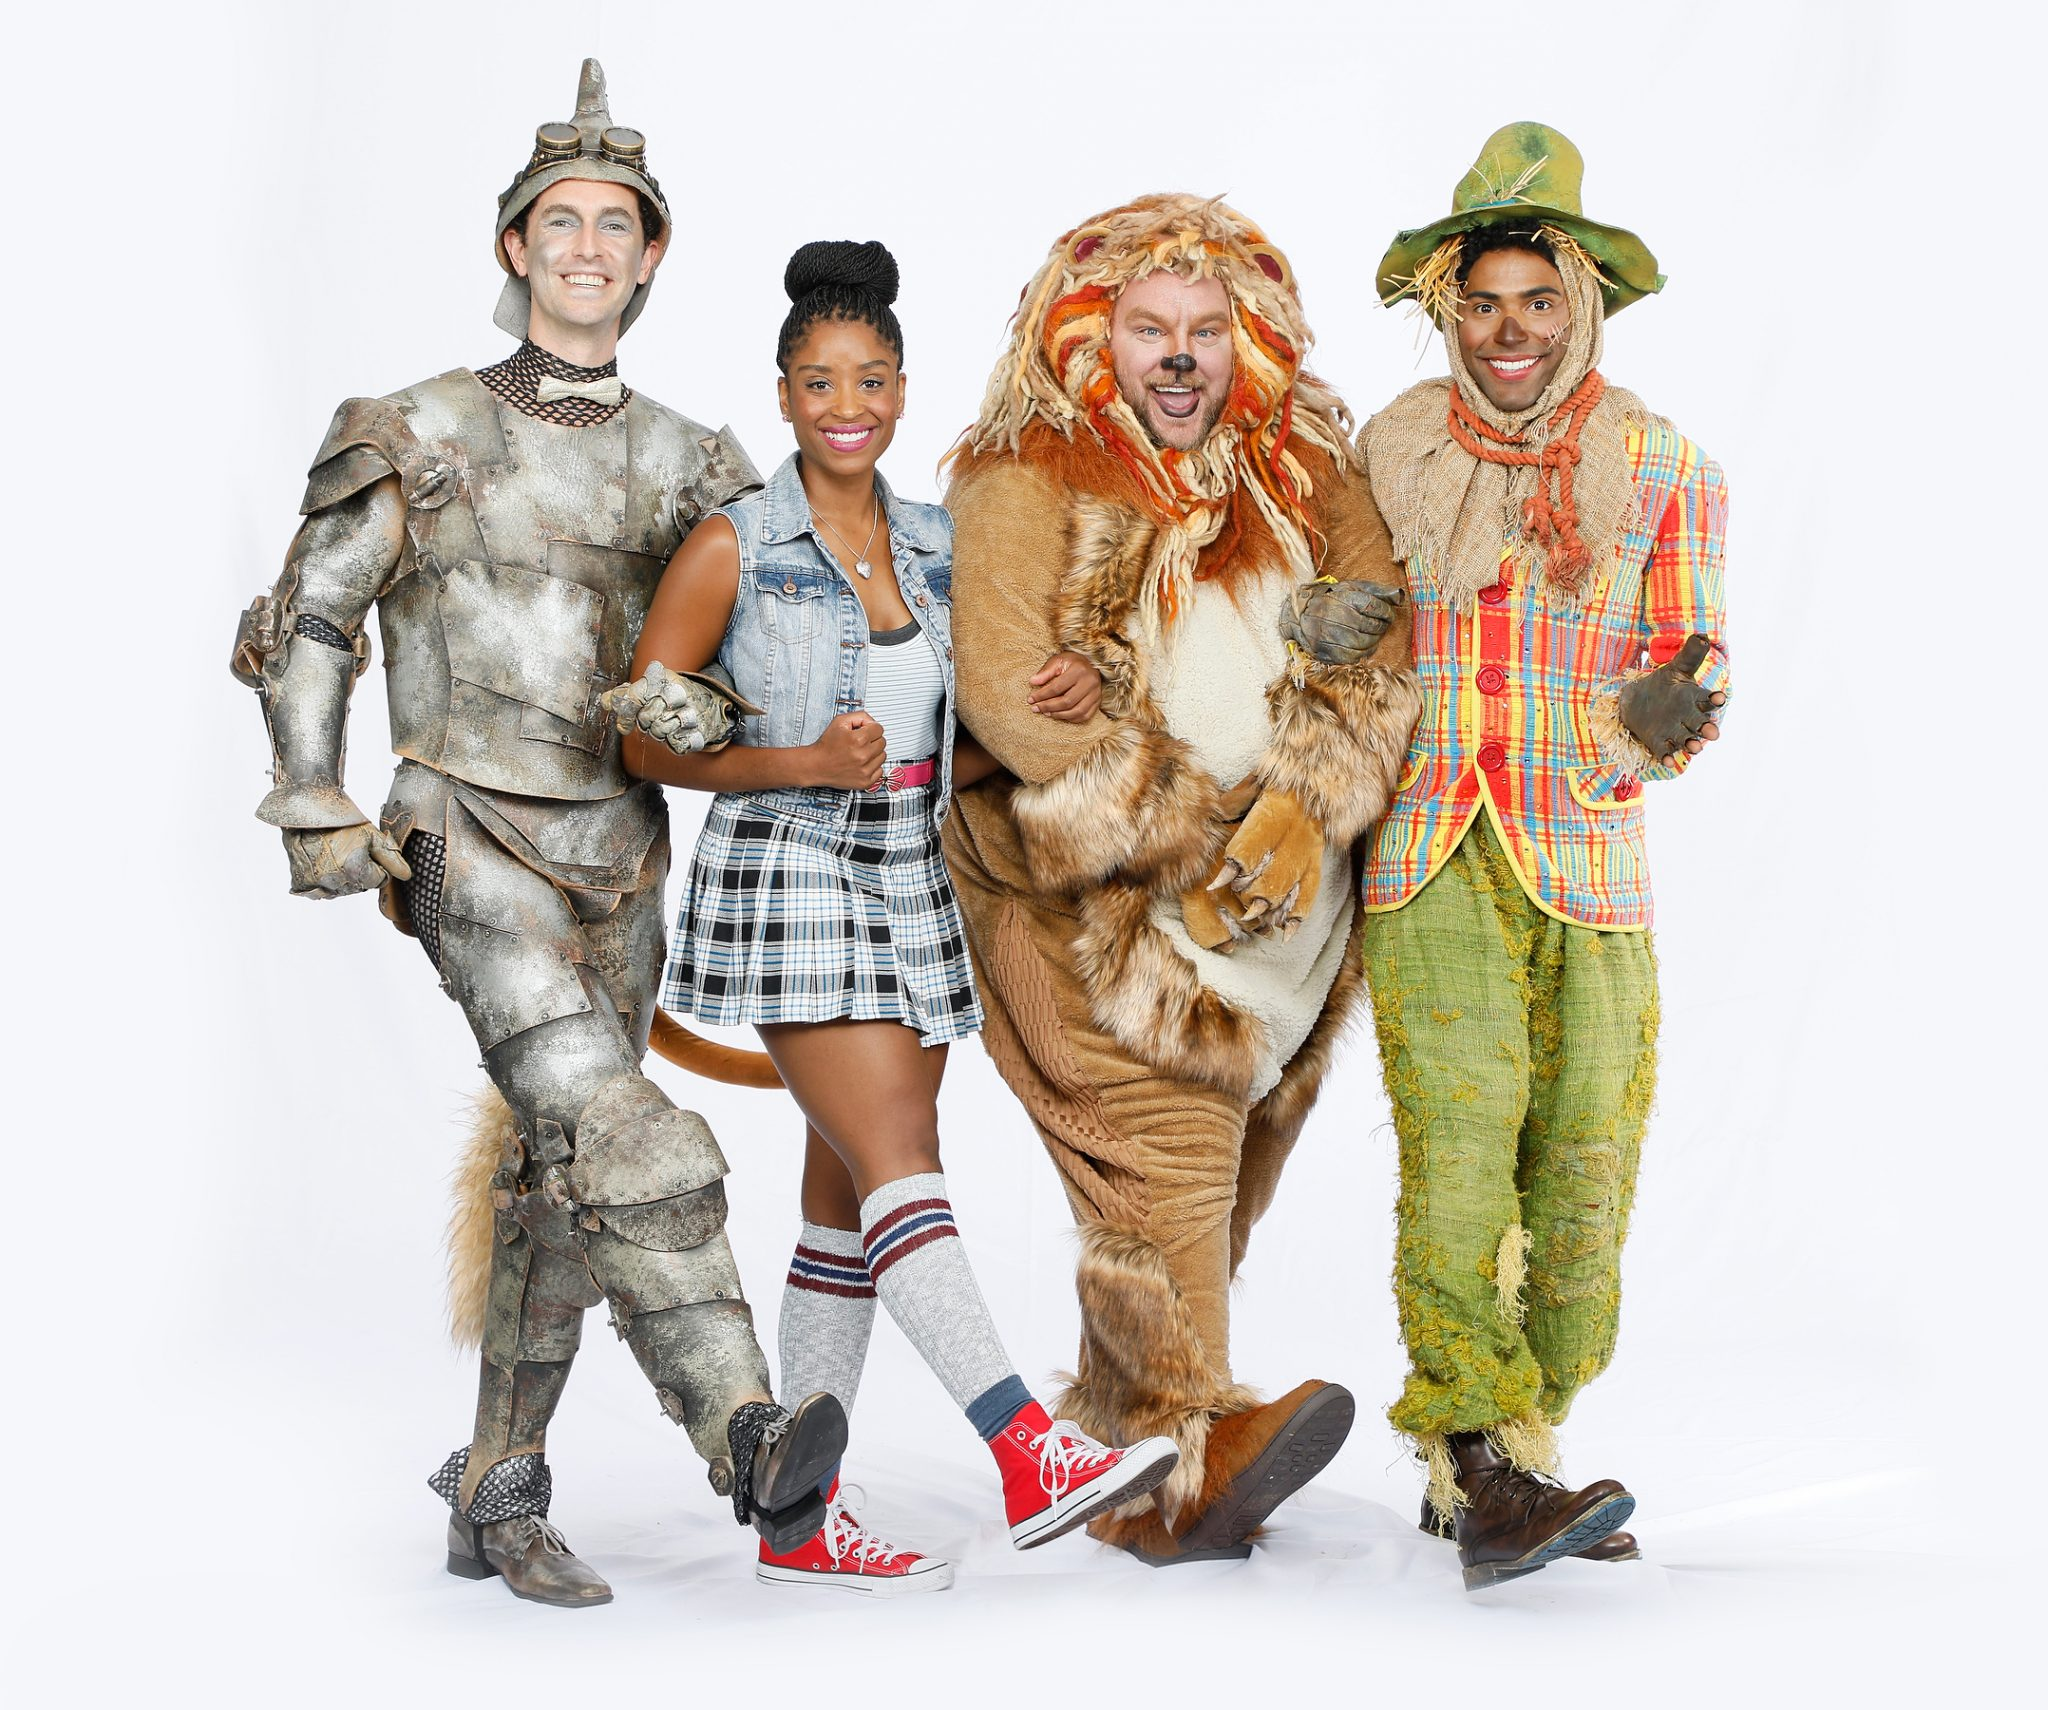 PAST EVENT: The Wizard of Oz – Ross Petty Productions (Elgin Theatre, Toronto) November 30, 2018 – January 5, 2019